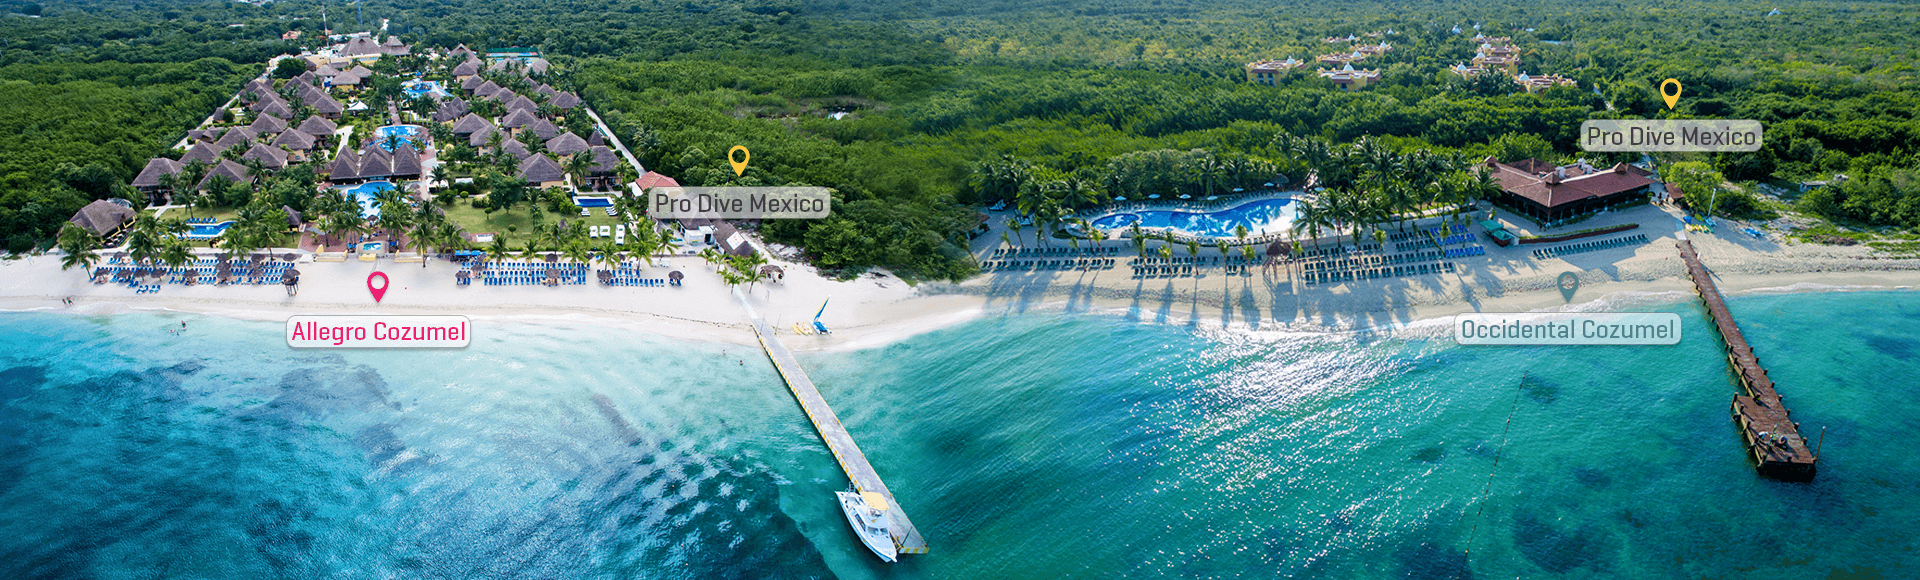 The Ultimate Dive Experience offered at Allegro and Occidental Cozumel allow divers to discover Cozumel like never before.